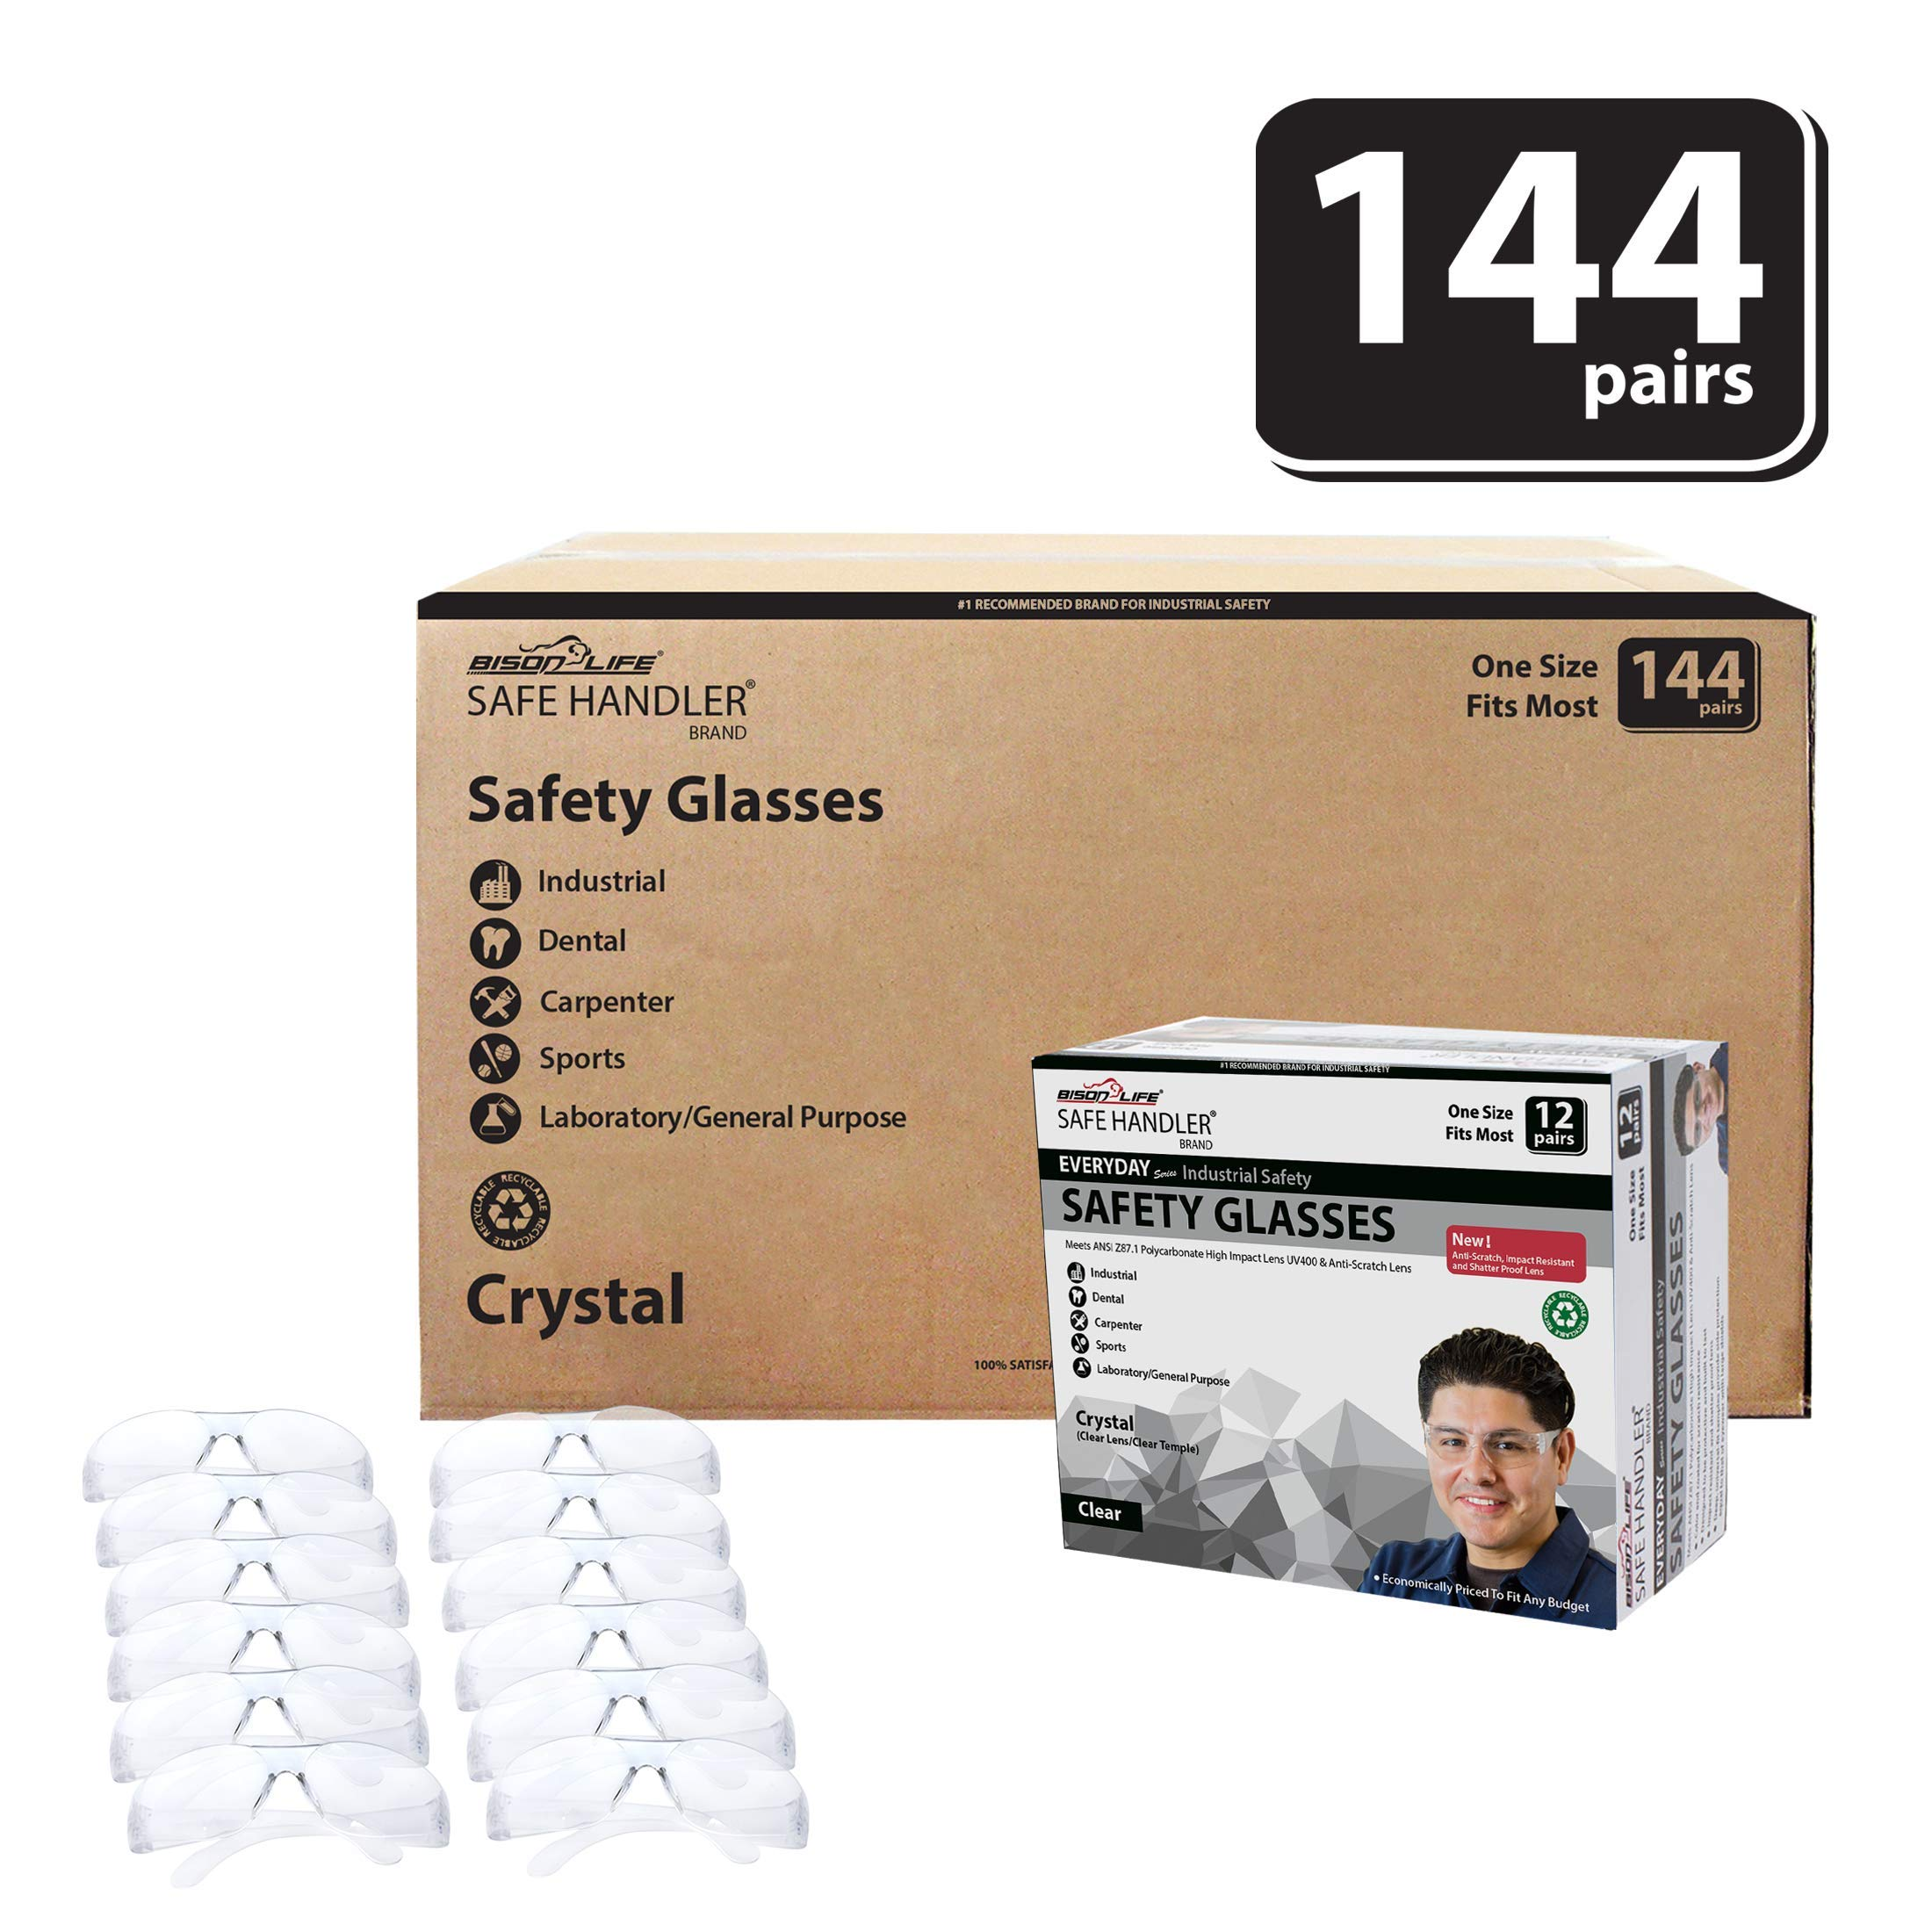 BISON LIFE Safety Glasses   One Size, Clear Protective Polycarbonate Lens, Clear Temple, 12 per Box (Case of 12 boxes, 144 pairs total) by BISON LIFE